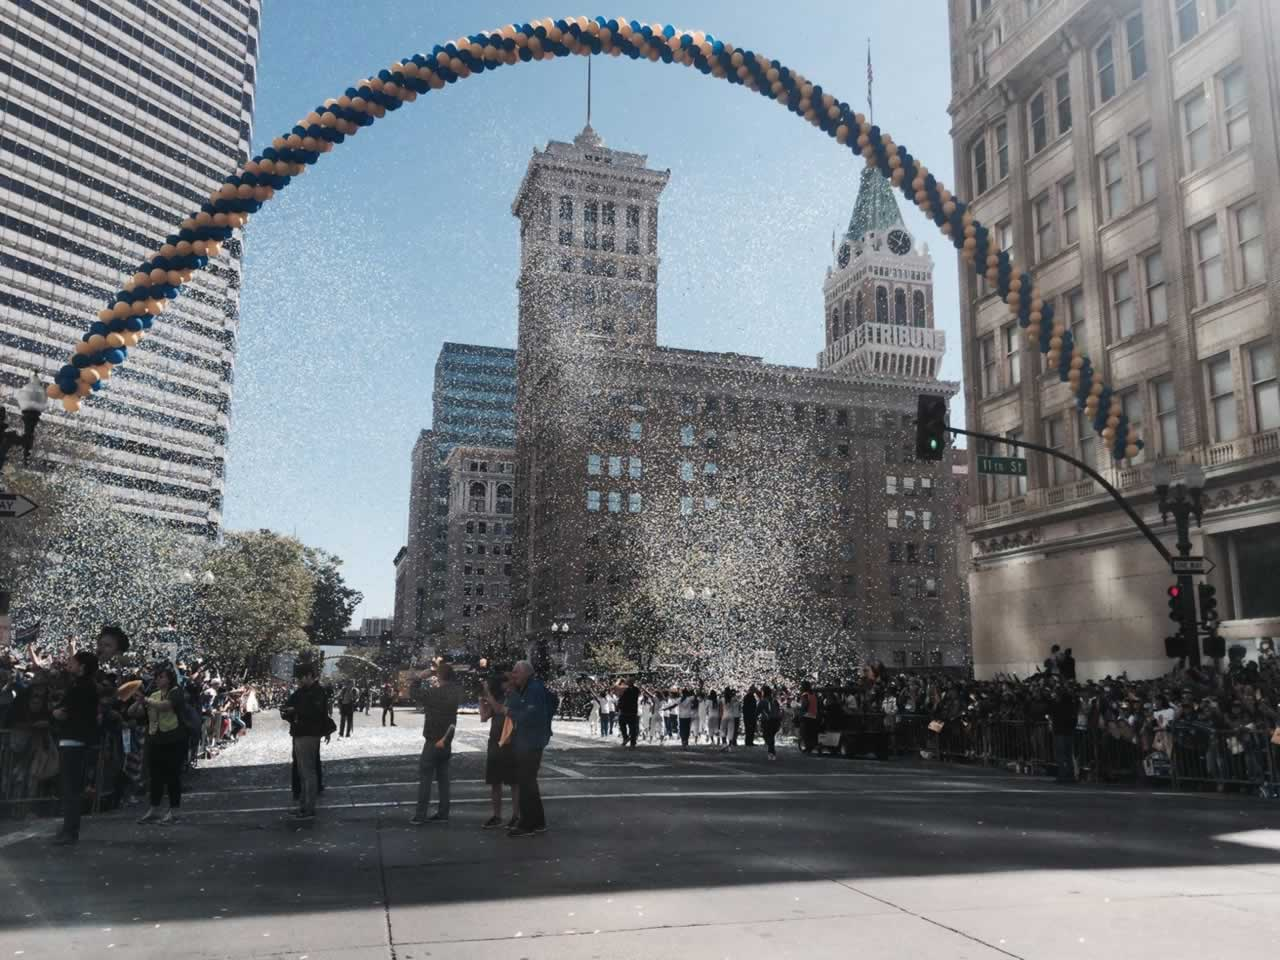 "<div class=""meta image-caption""><div class=""origin-logo origin-image none""><span>none</span></div><span class=""caption-text"">The Golden State Warriors parade in Oakland, Calif. on Friday, June 19, 2015. (KGO-TV)</span></div>"